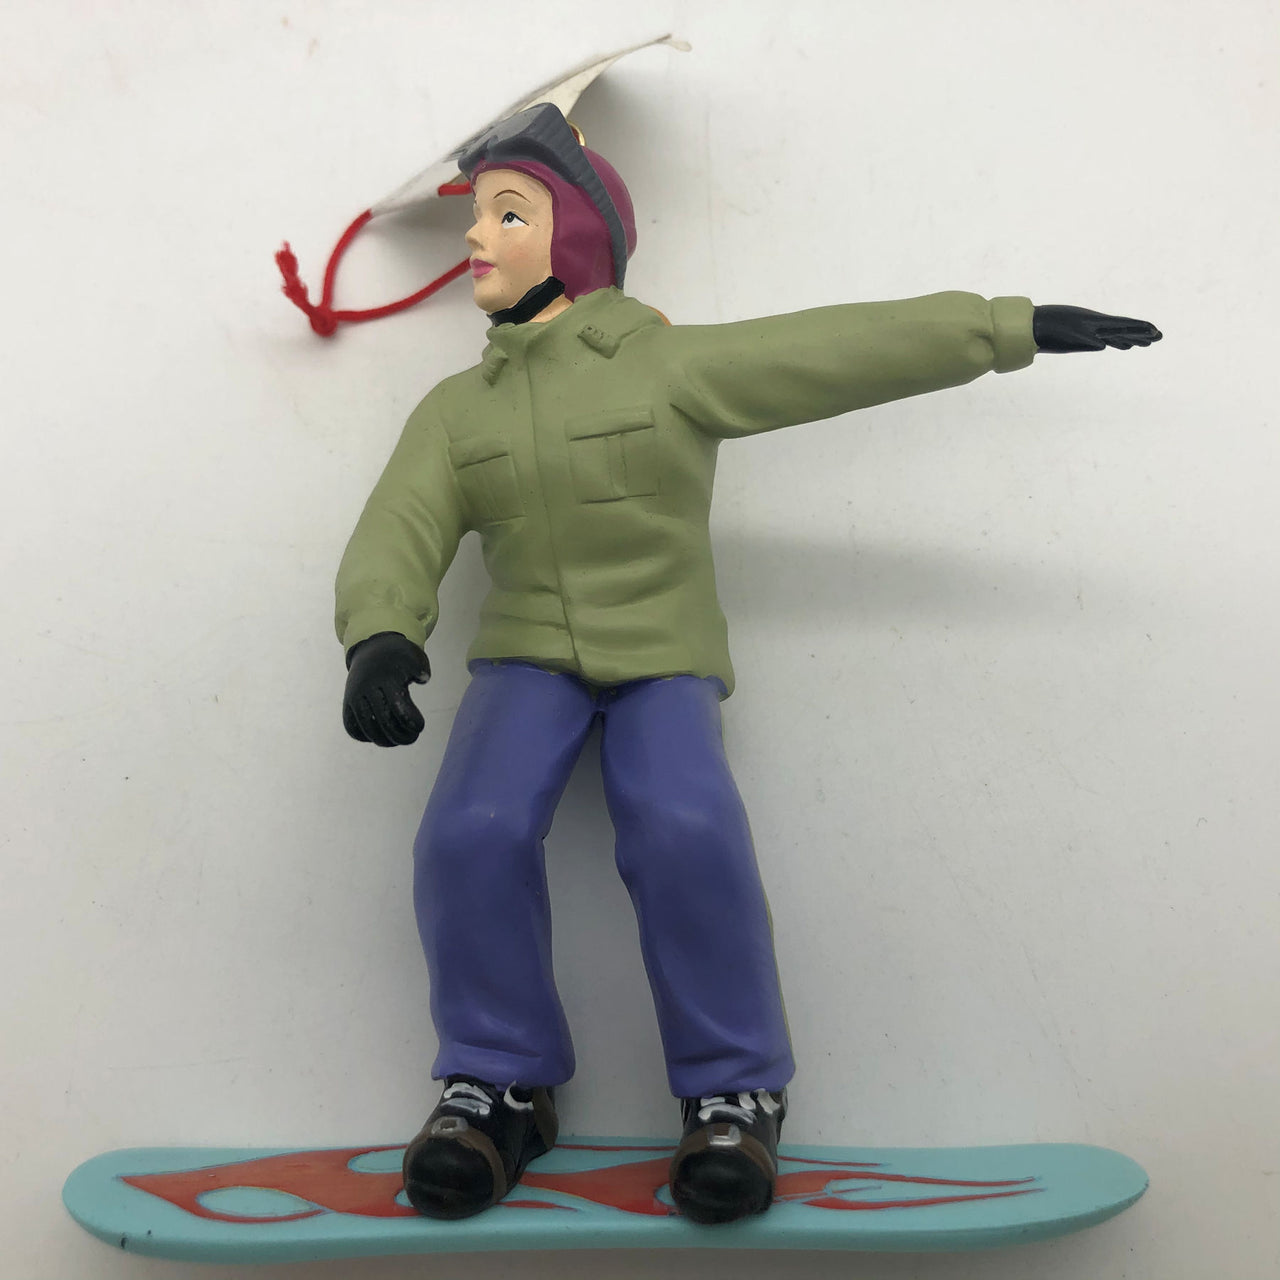 Snowboarder Christmas Ornament Girl Pony Tail Winter